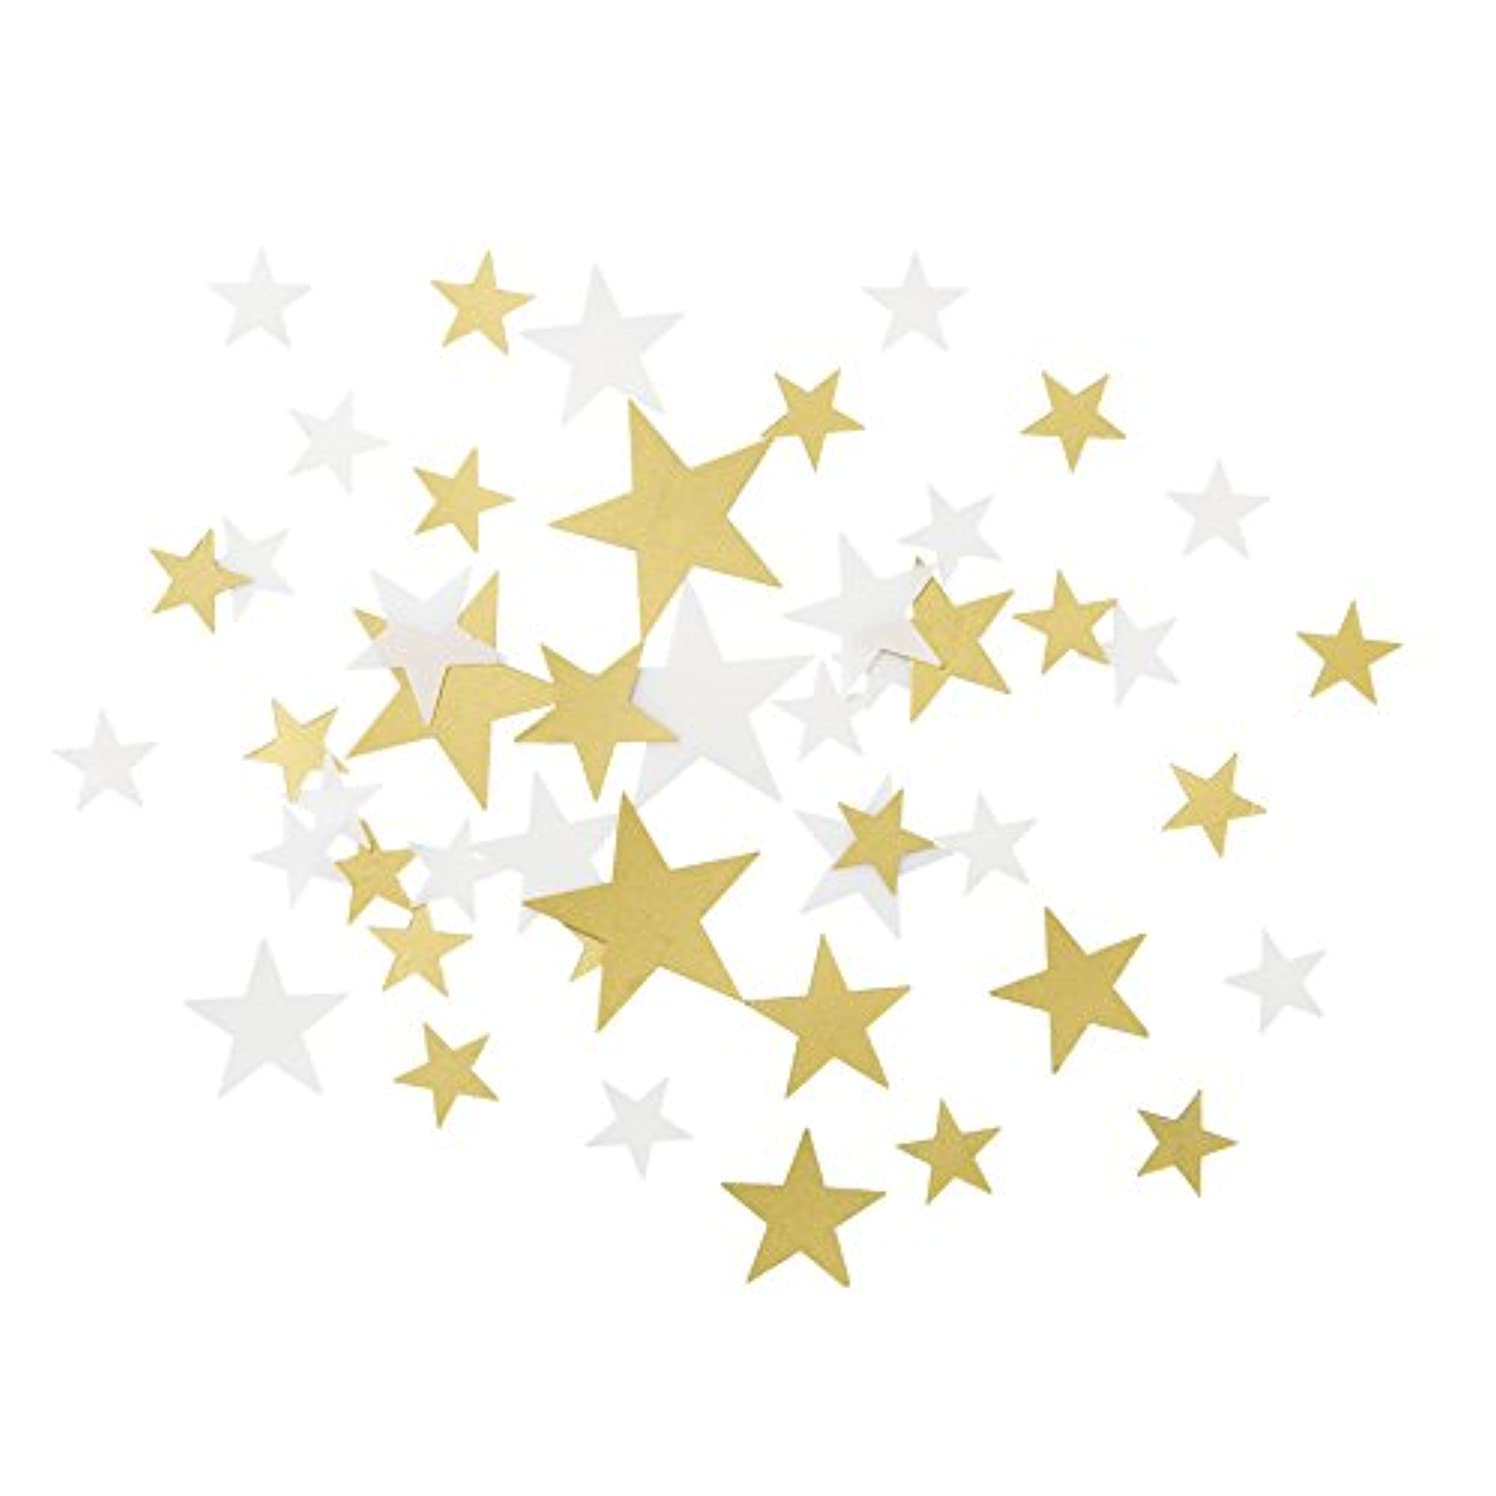 Talking Tables Gold Party Decorations | Star Confetti | White And Gold Table Scatter | Great For Wedding, Bridal Shower, Christmas And Birthday Decorations